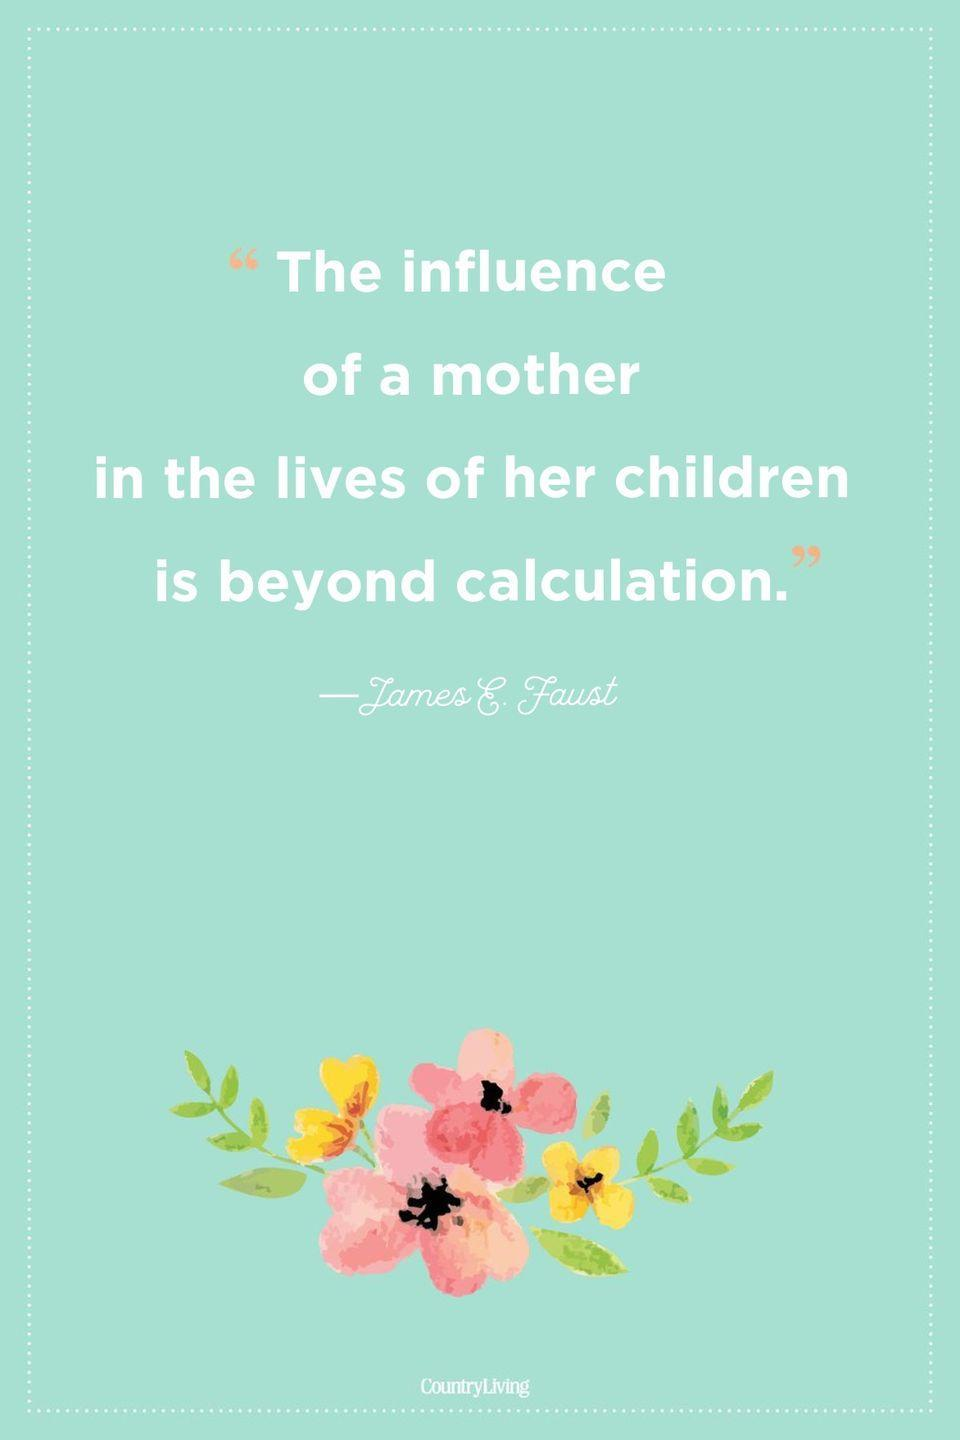 "<p>""The influence of a mother in the lives of her children is beyond calculation.""</p>"